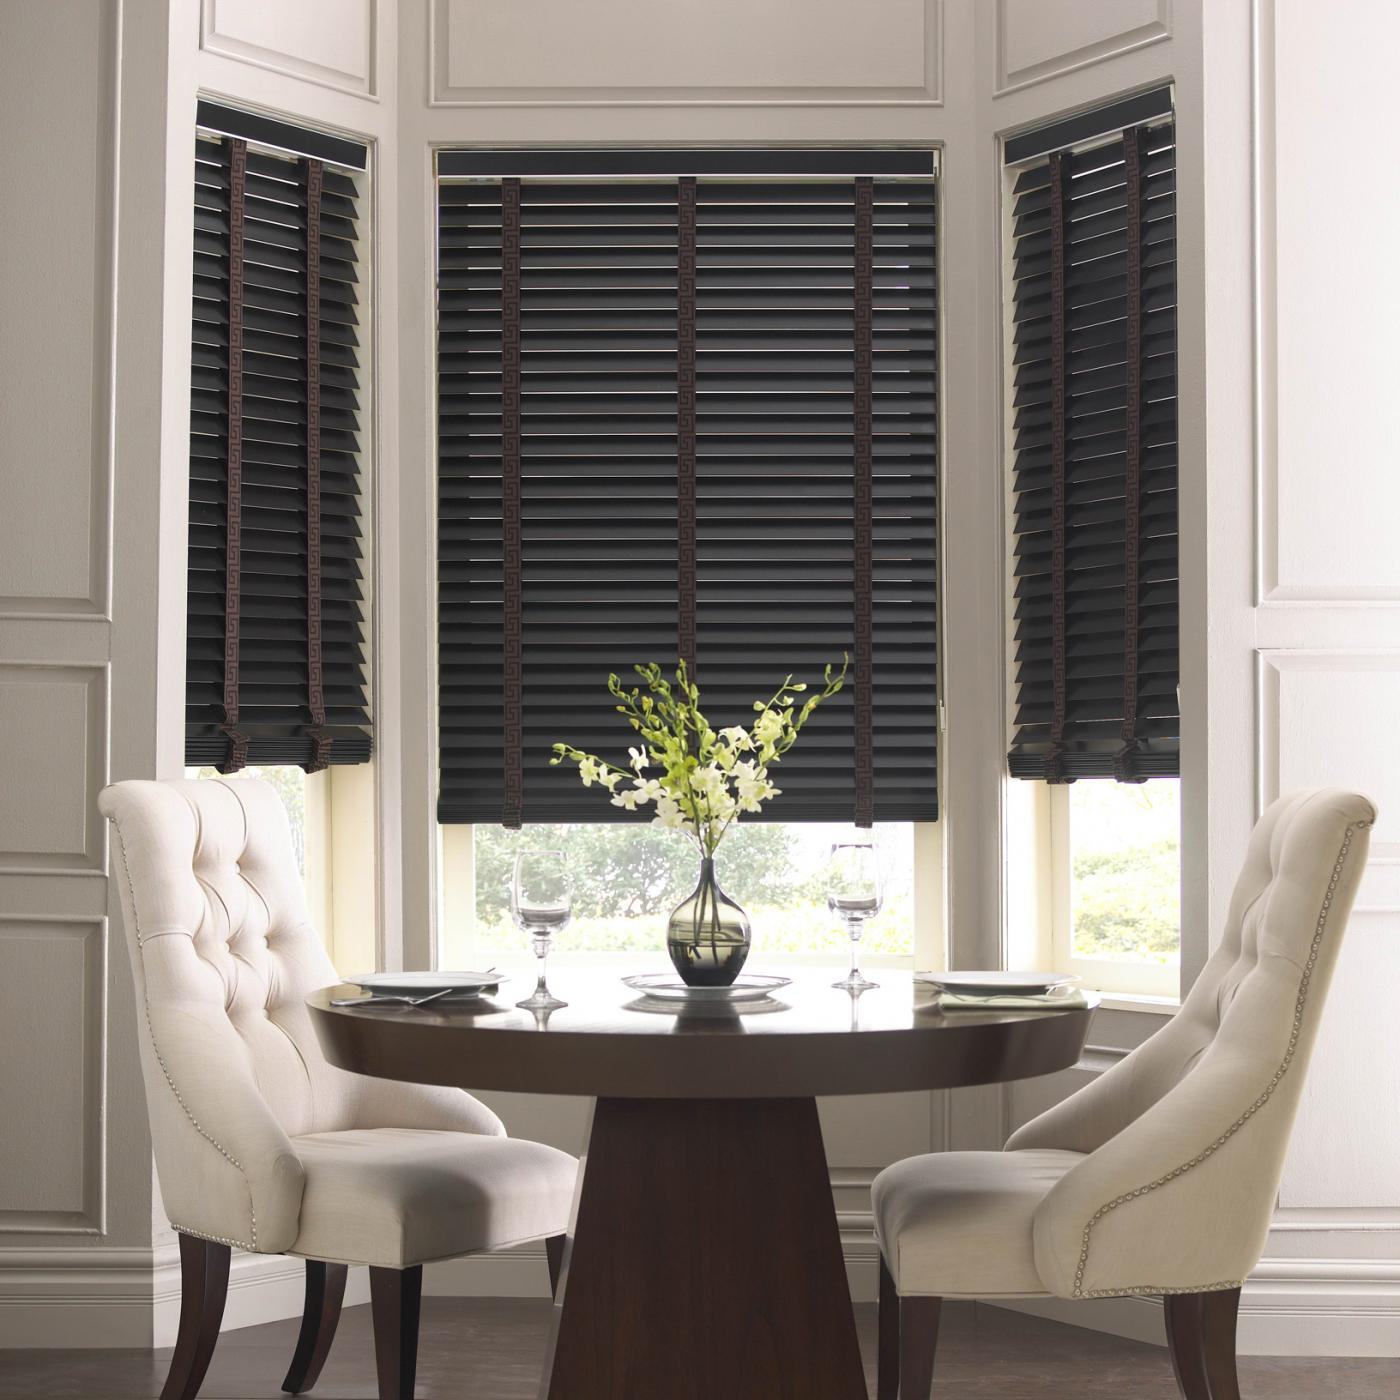 Shades And Blinds Evershades Style And Elegance